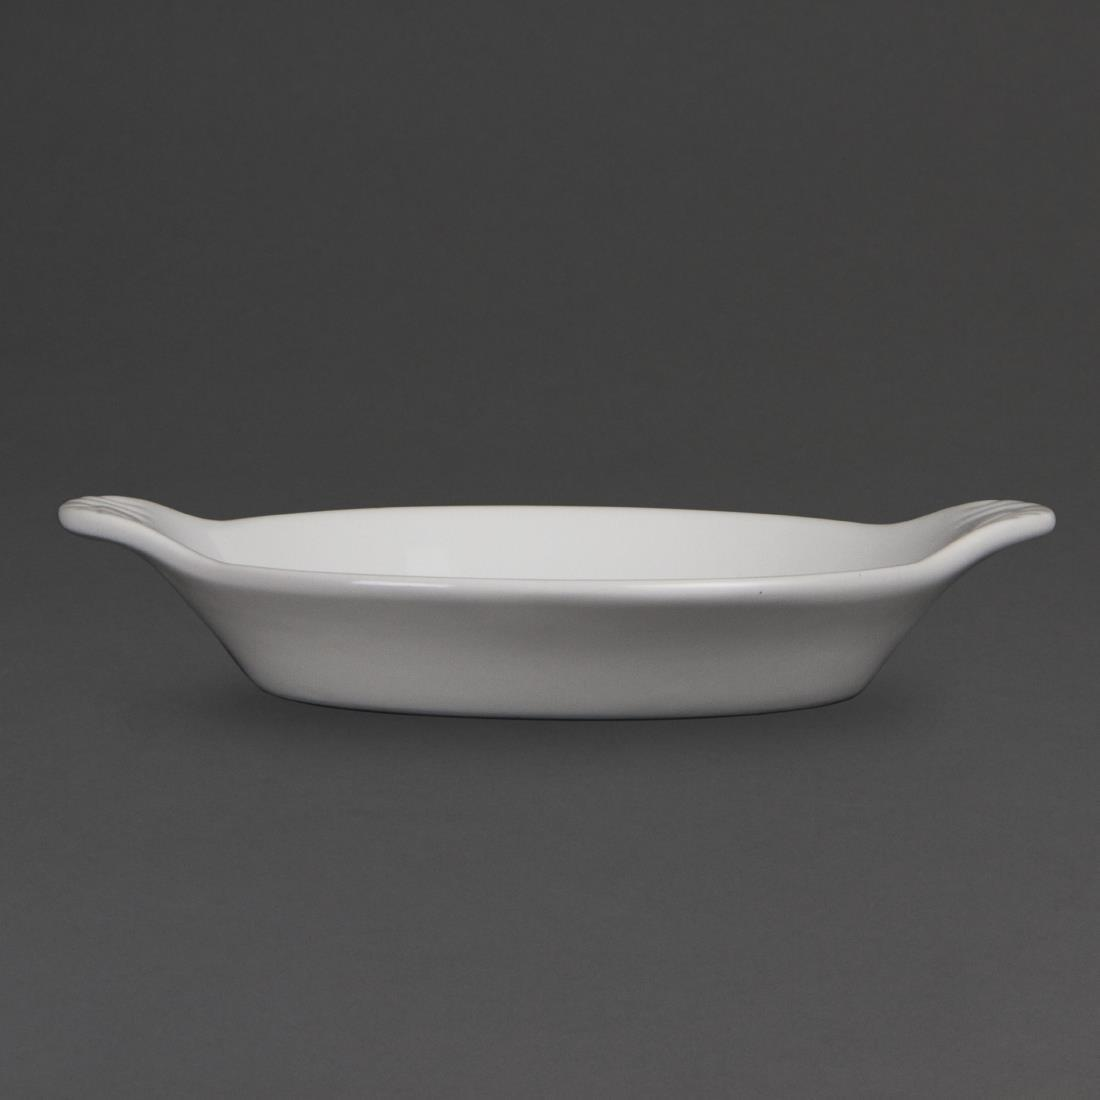 W439 - Olympia Whiteware Round Eared Dish